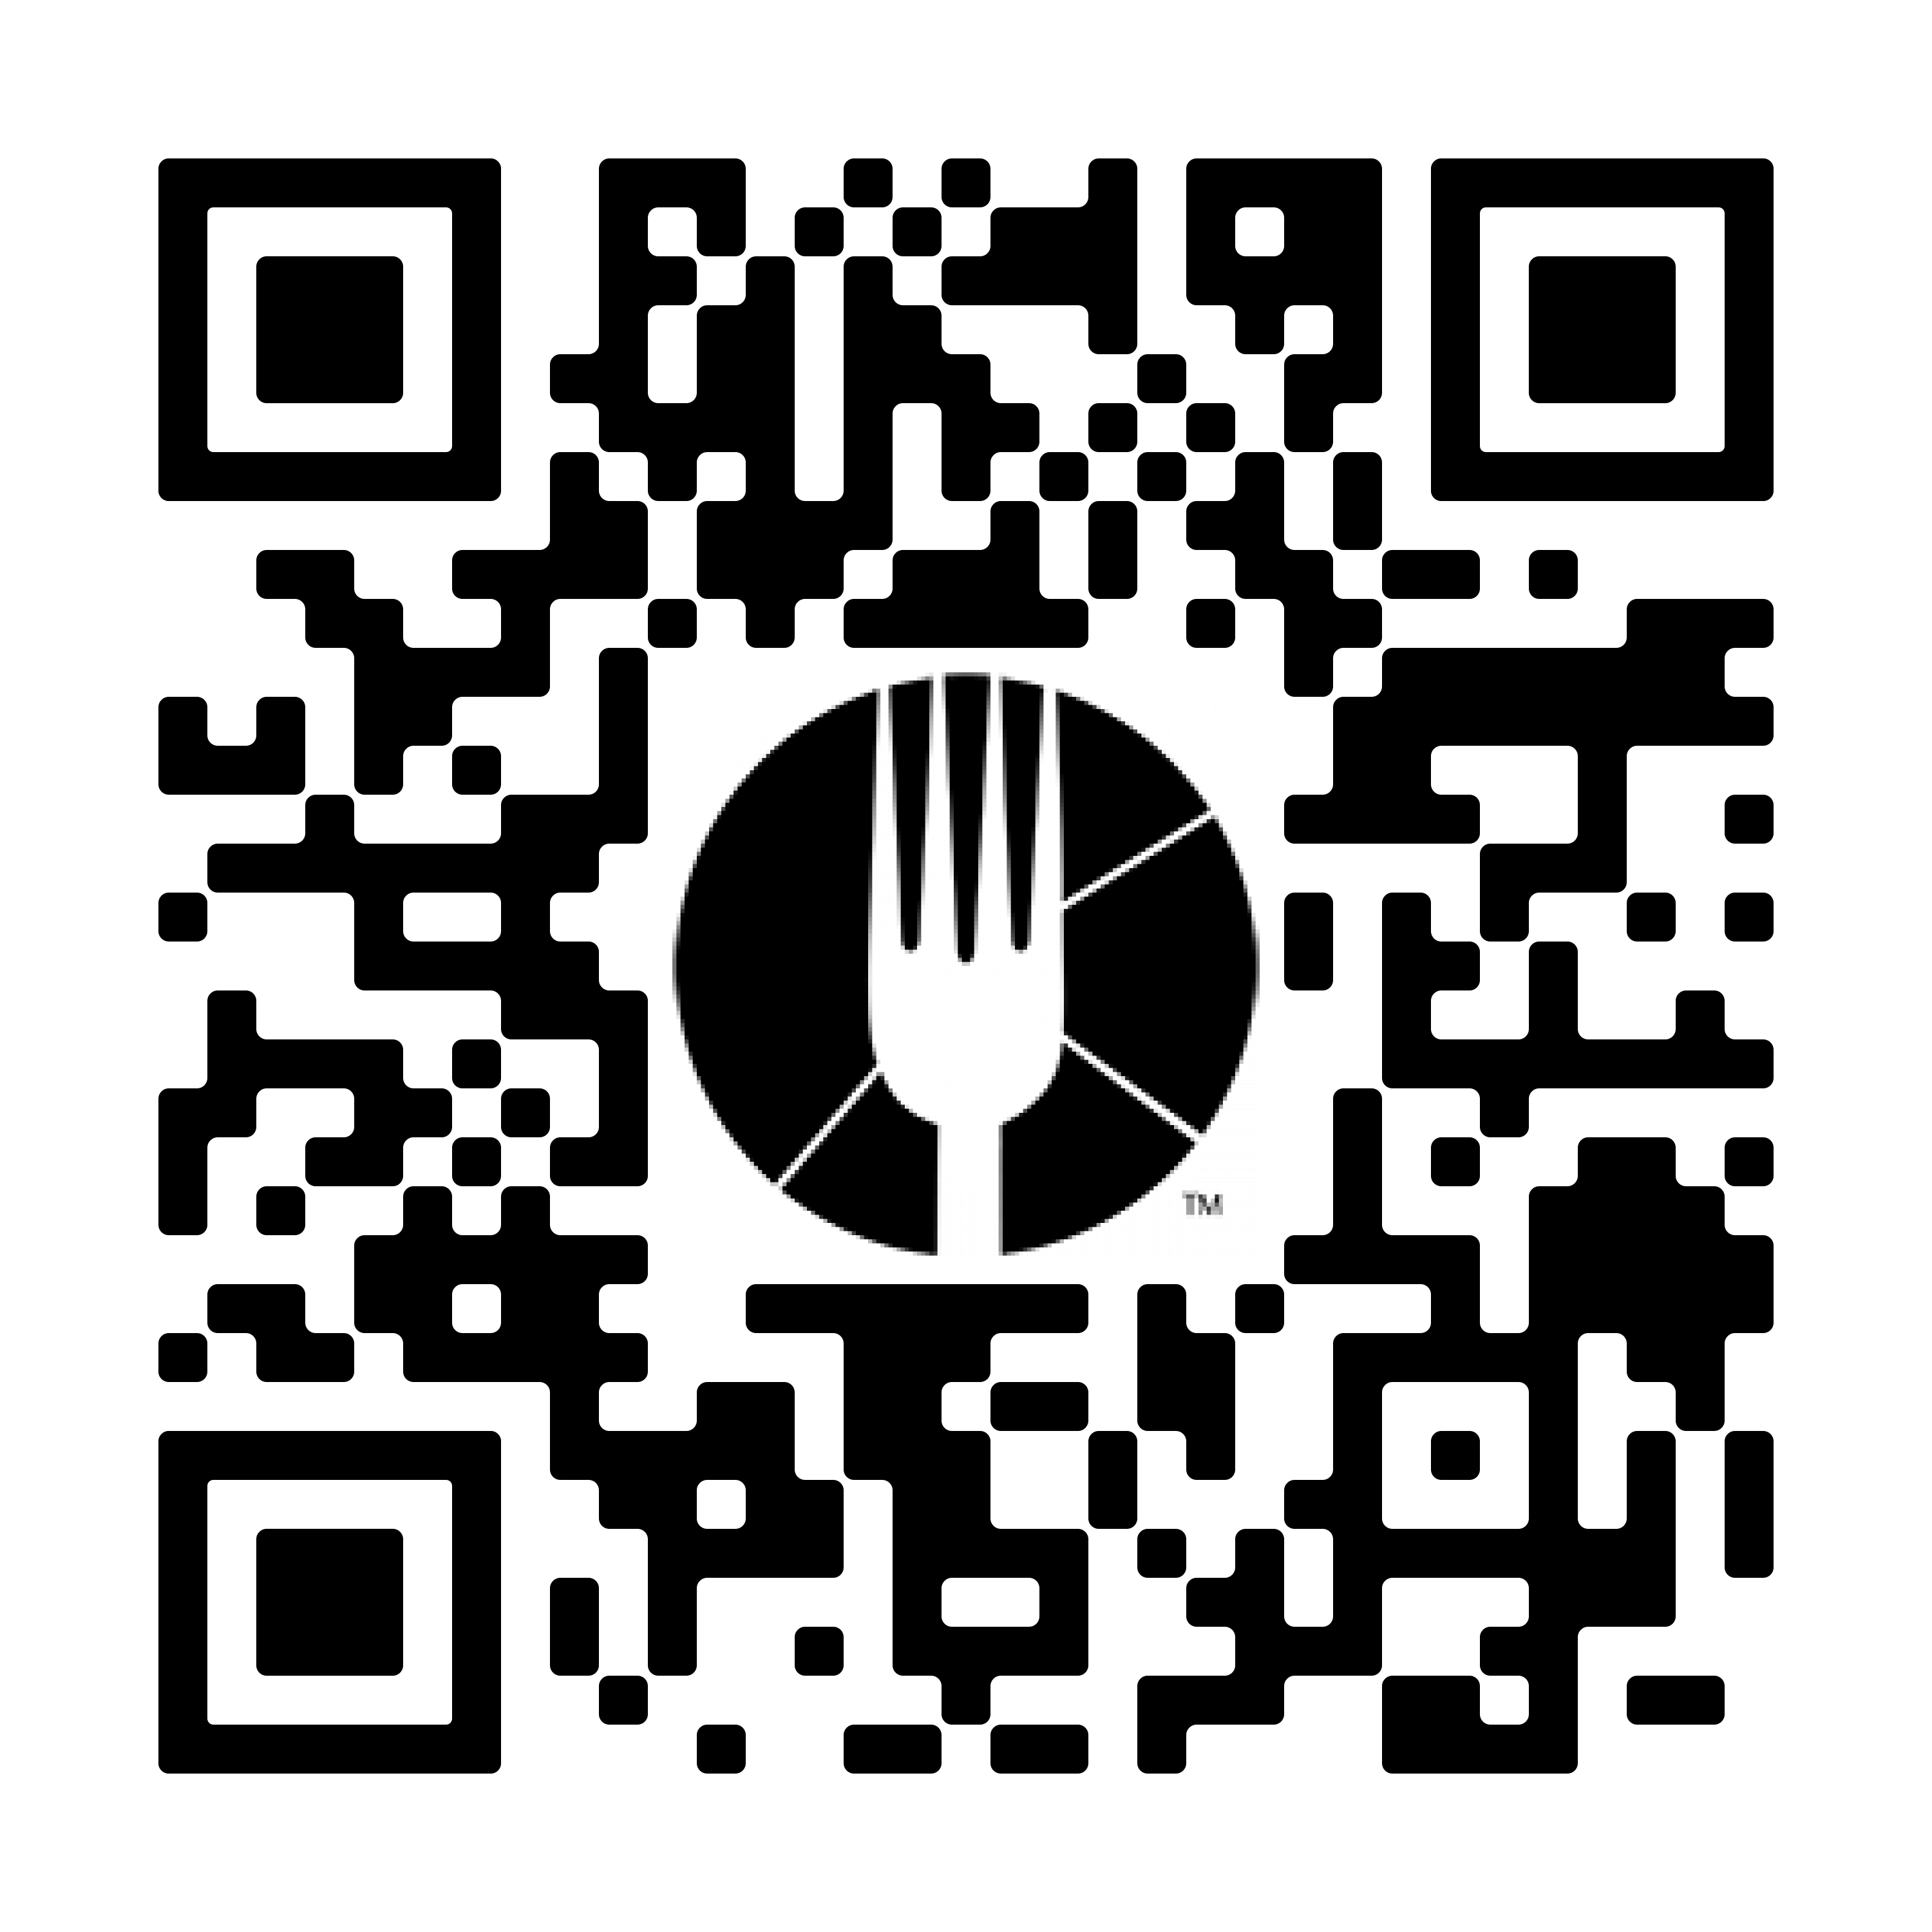 QR code enabling users to download the Dinova iOS app with COVID safety features messing